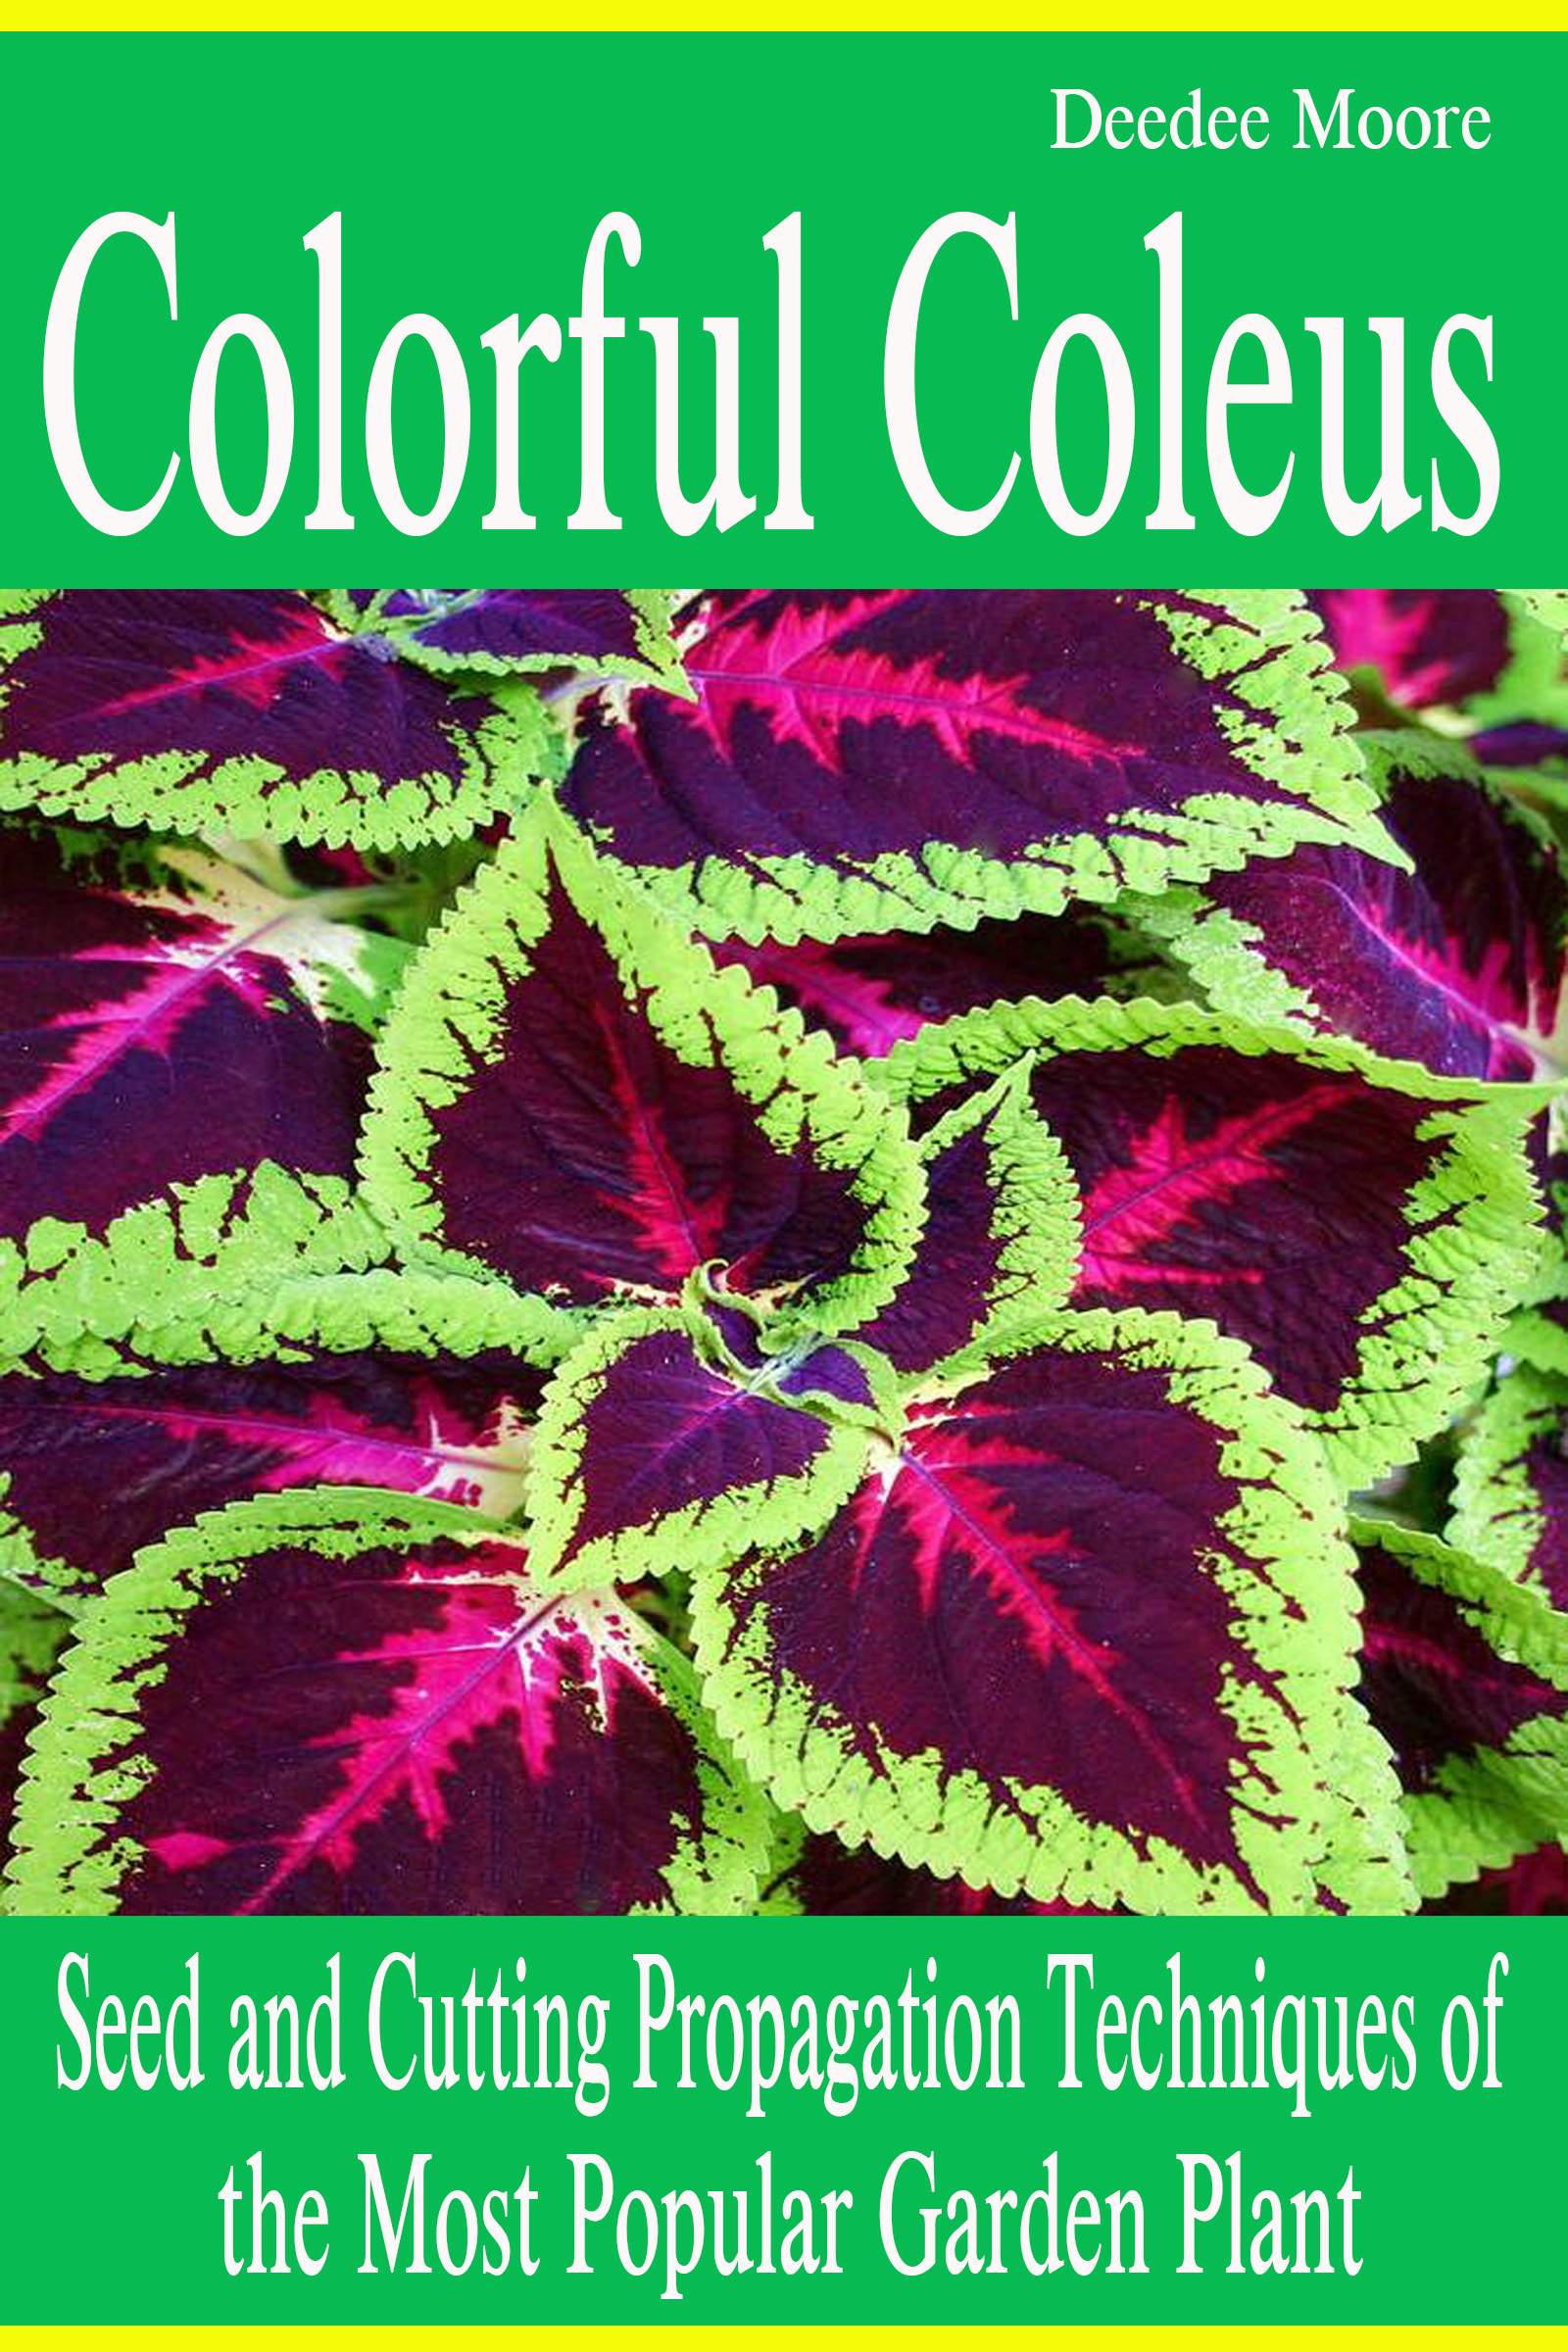 Colorful Coleus: Seed and Cutting Propagation Techniques of the Most Popular Garden Plant Deedee Moore